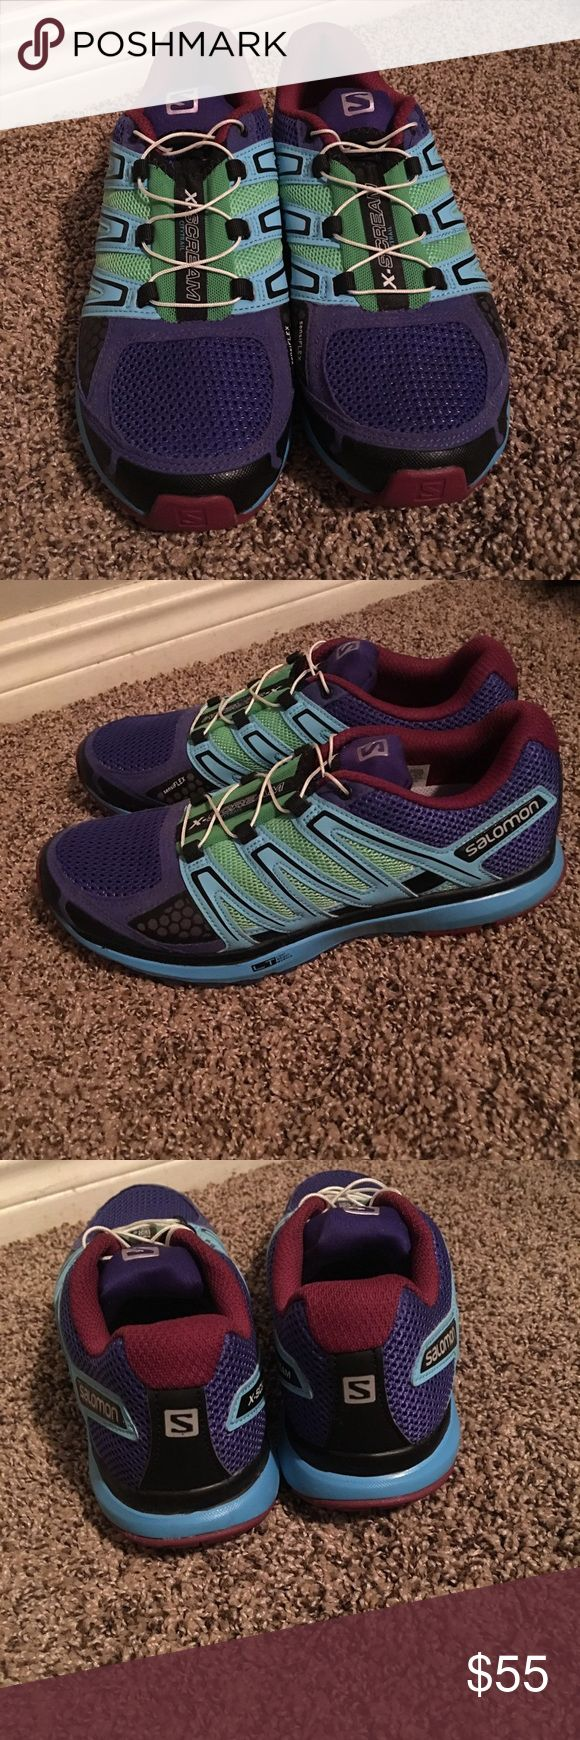 Salomon X-Scream City Trail Women's Sz. 8.5 Salomon X-Scream City Trail Women's Sz. 8.5.  Excellent condition.  Basically brand new.  Worn once, indoors.  Purple, magenta, sky blue, lime green, black with white laces.  Adjustable laces with pull- cord  that tucks in tongue of shoe. Salomon Shoes Athletic Shoes